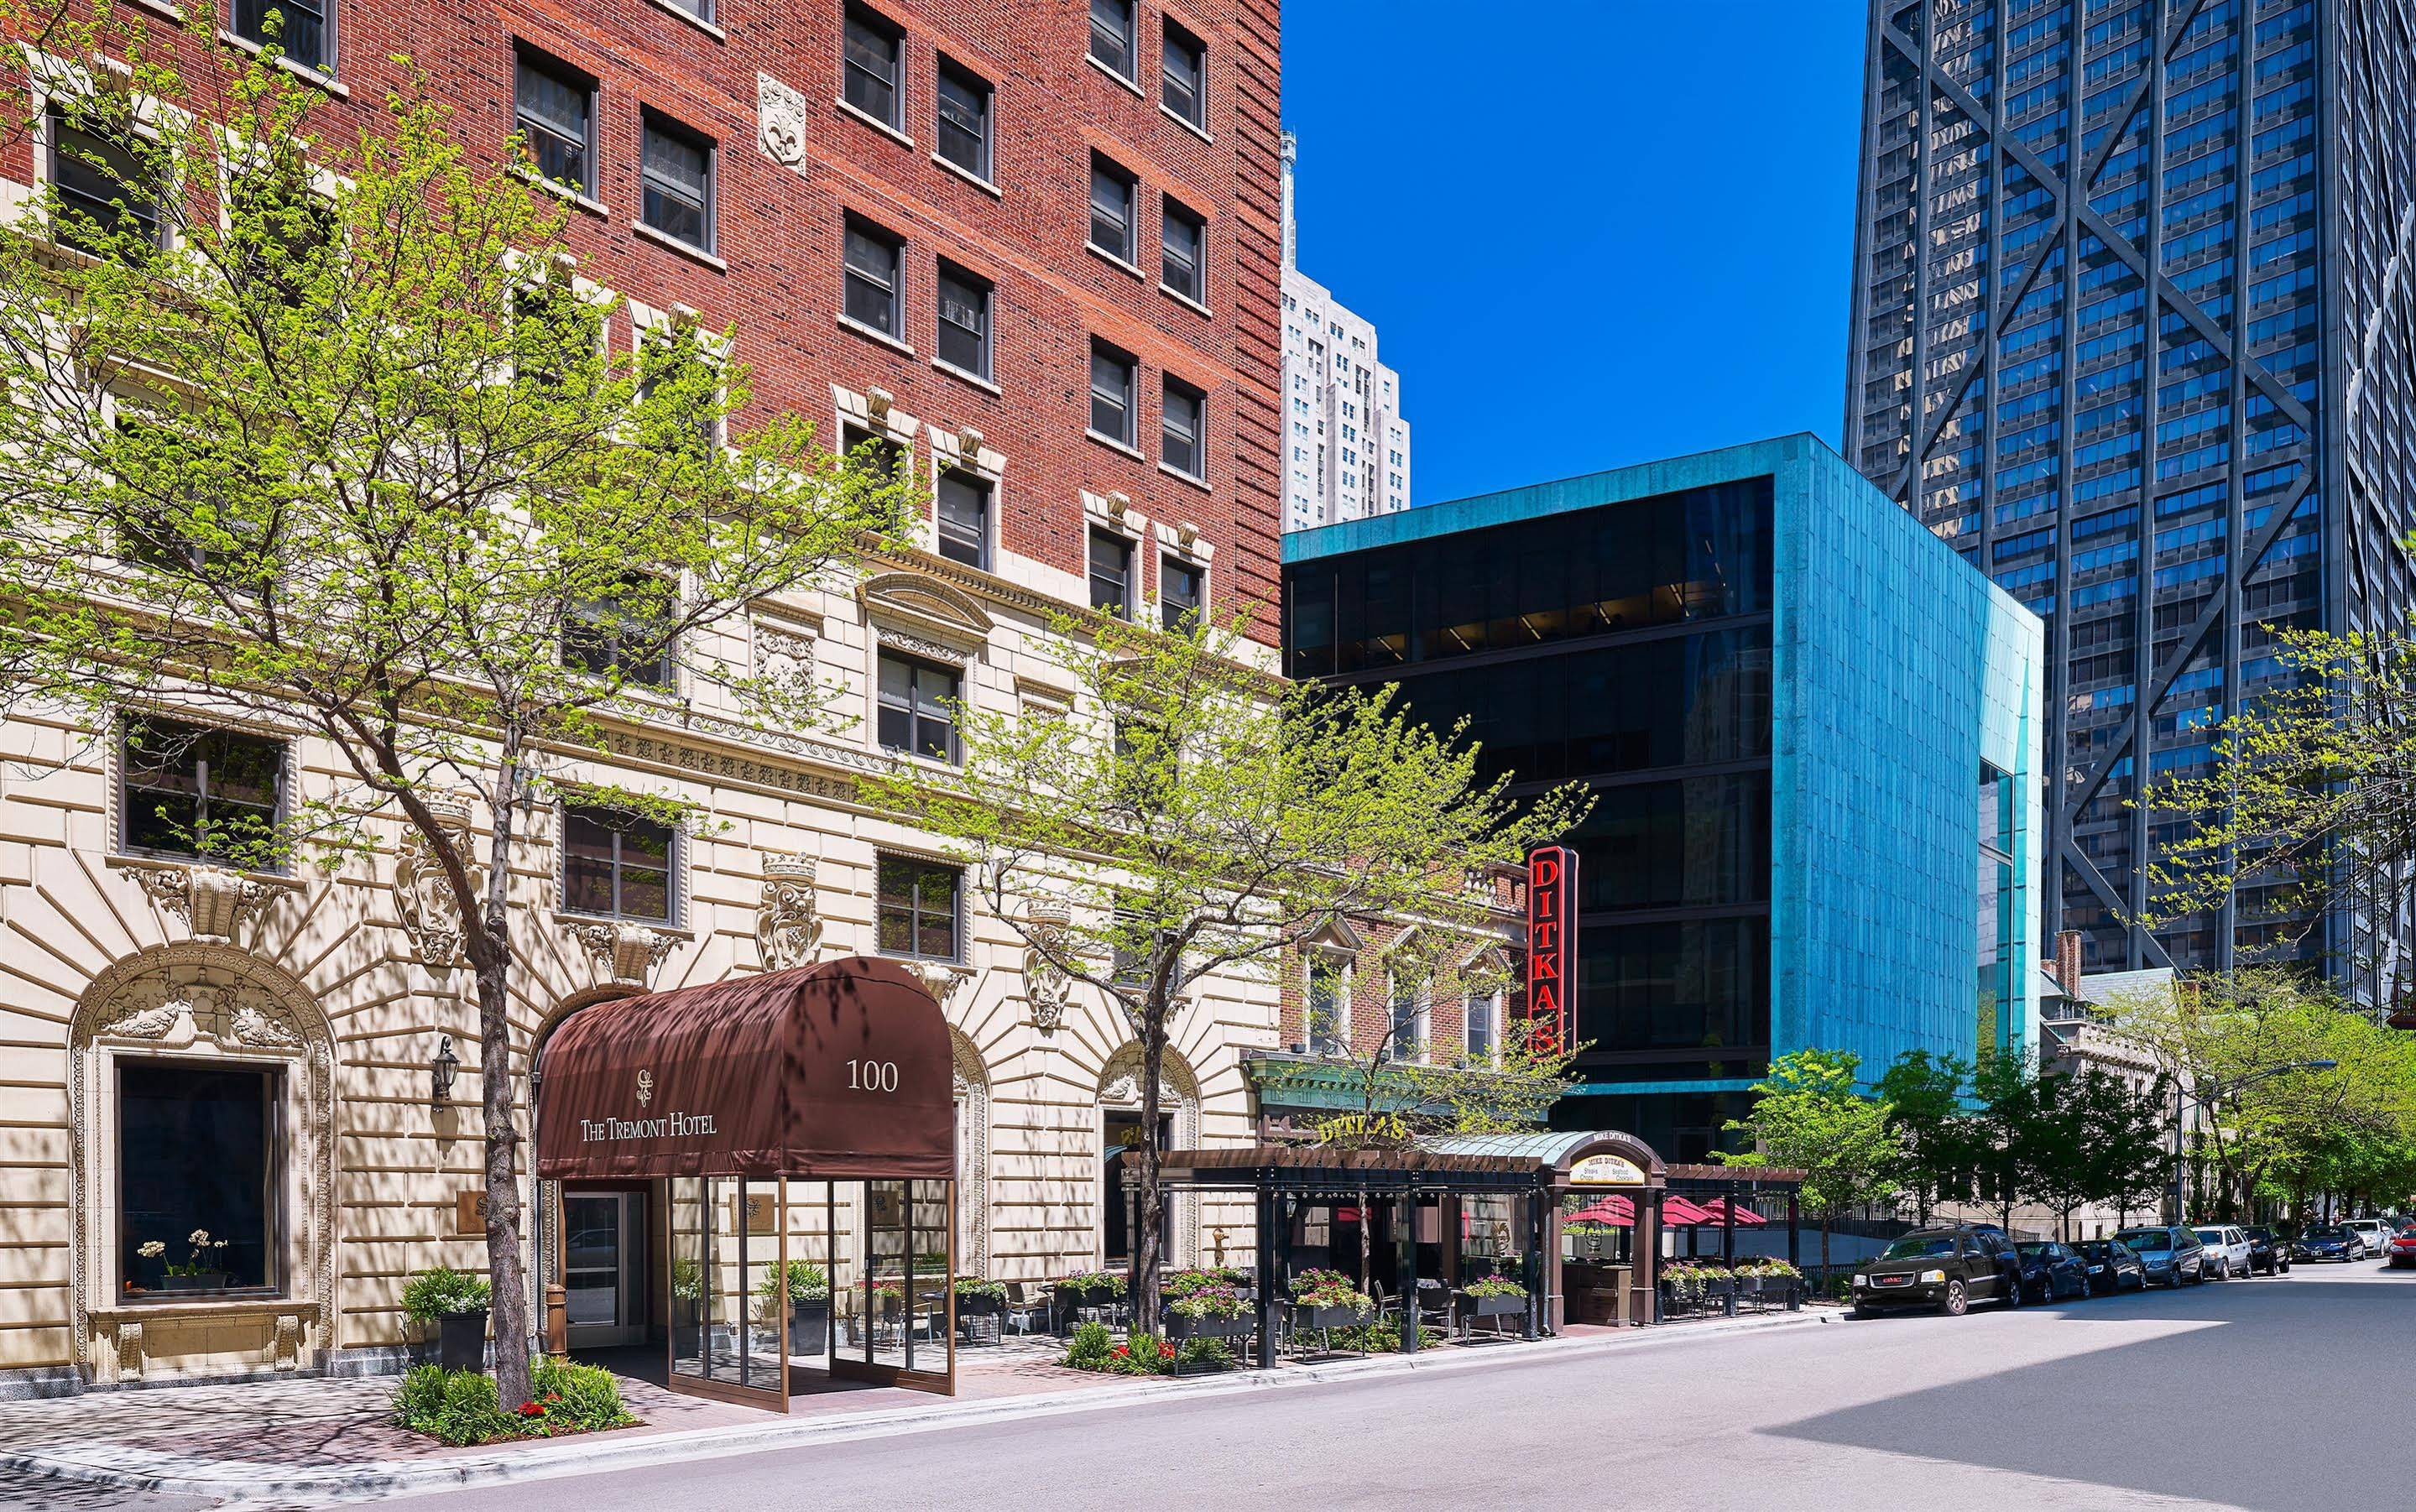 The Tremont Chicago Hotel at Magnificent Mile on